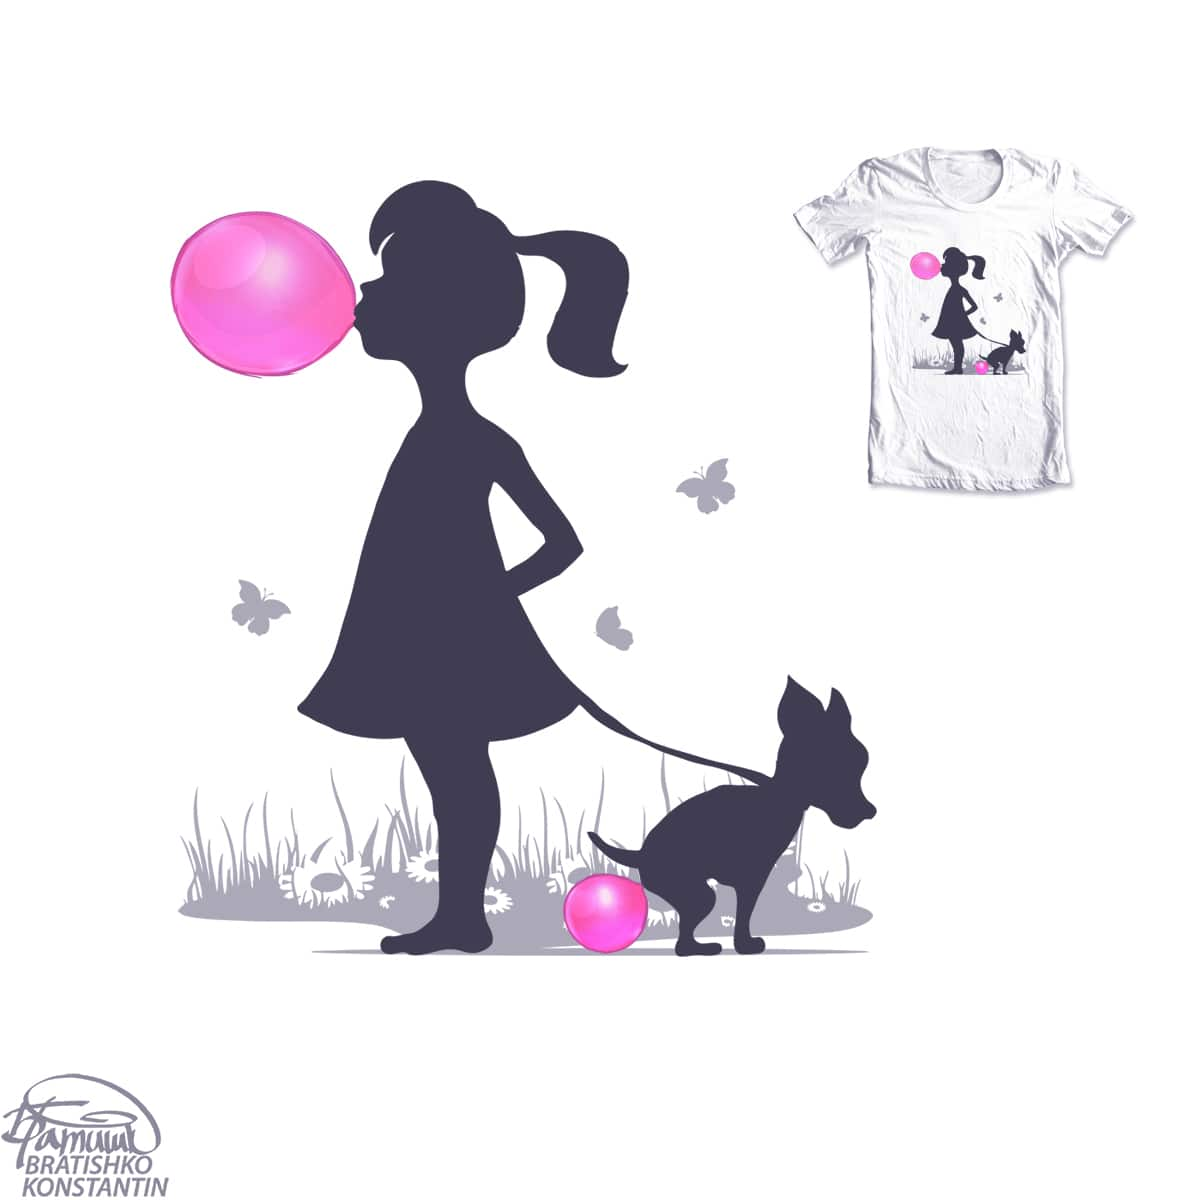 little girl and pooping dog by KONSTANTIN BRATISHKO on Threadless